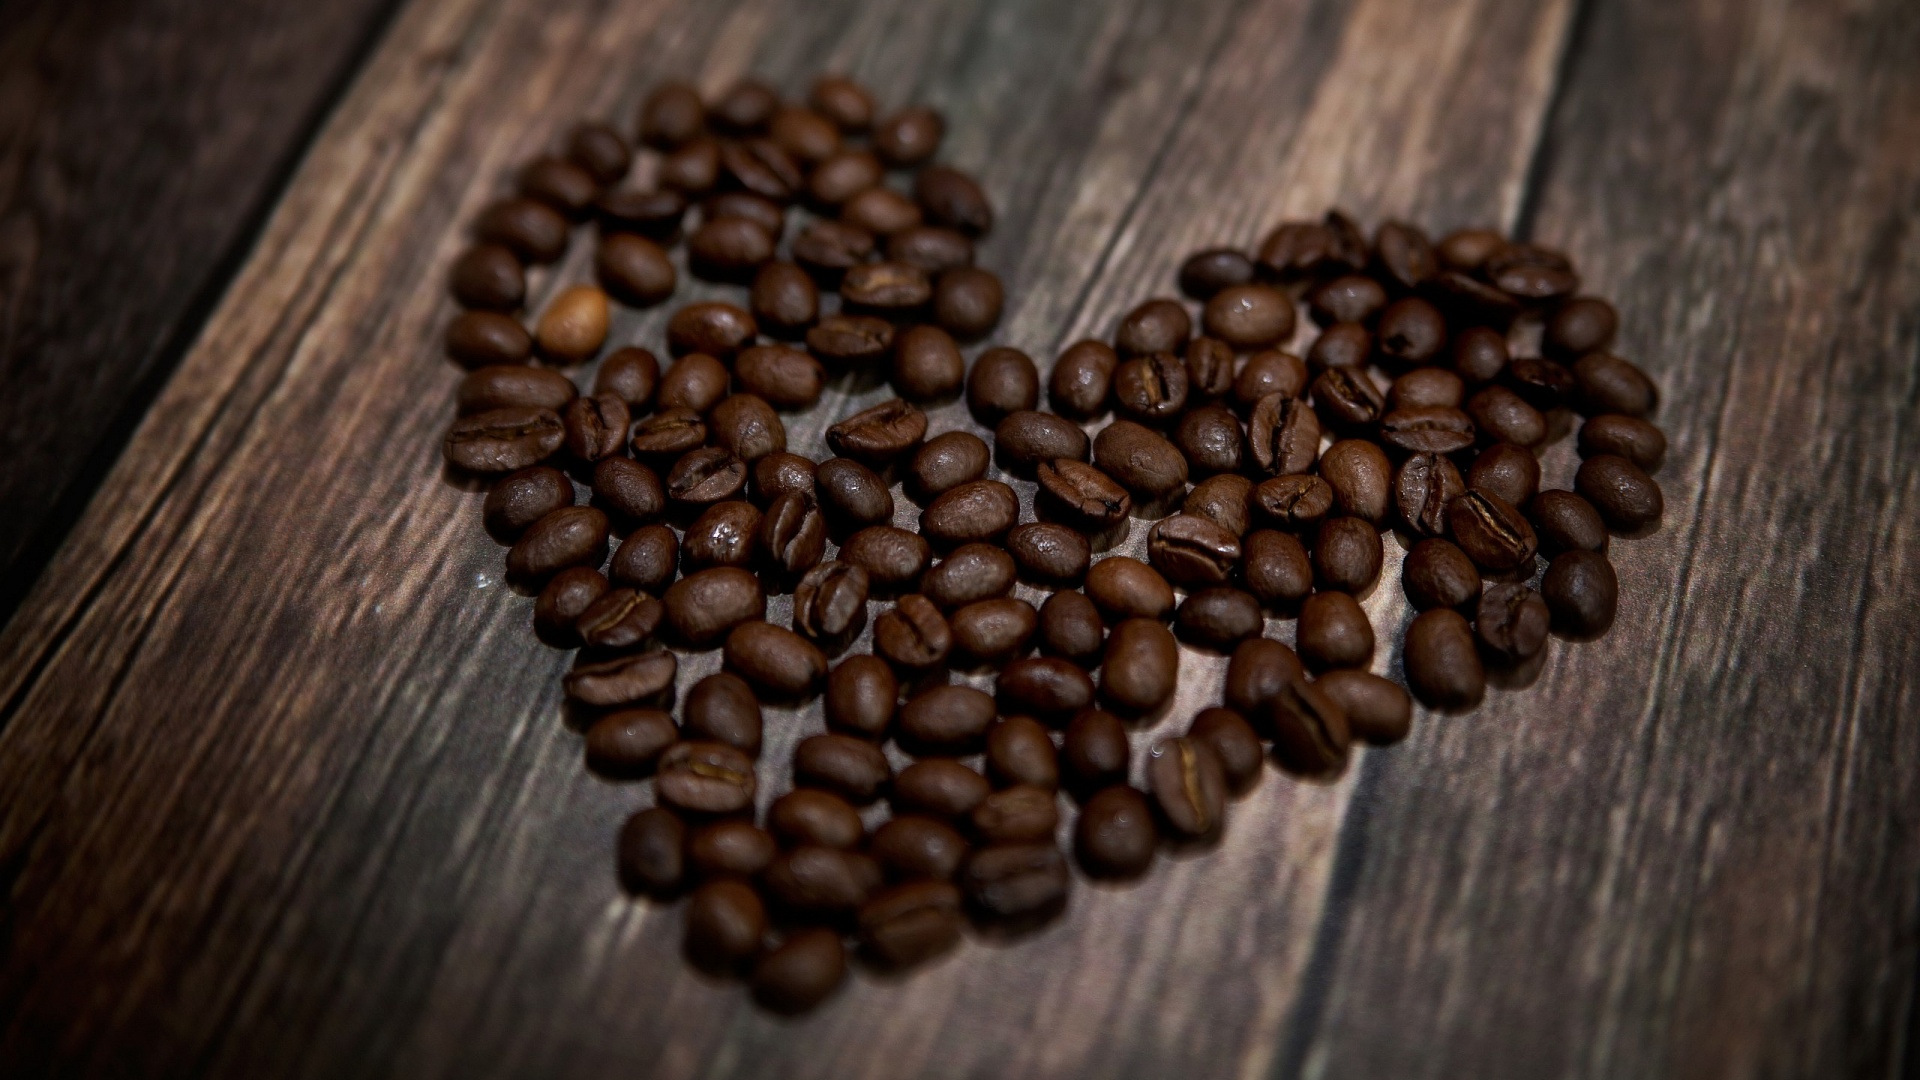 heart-coffee-beans-1920x1080.jpg